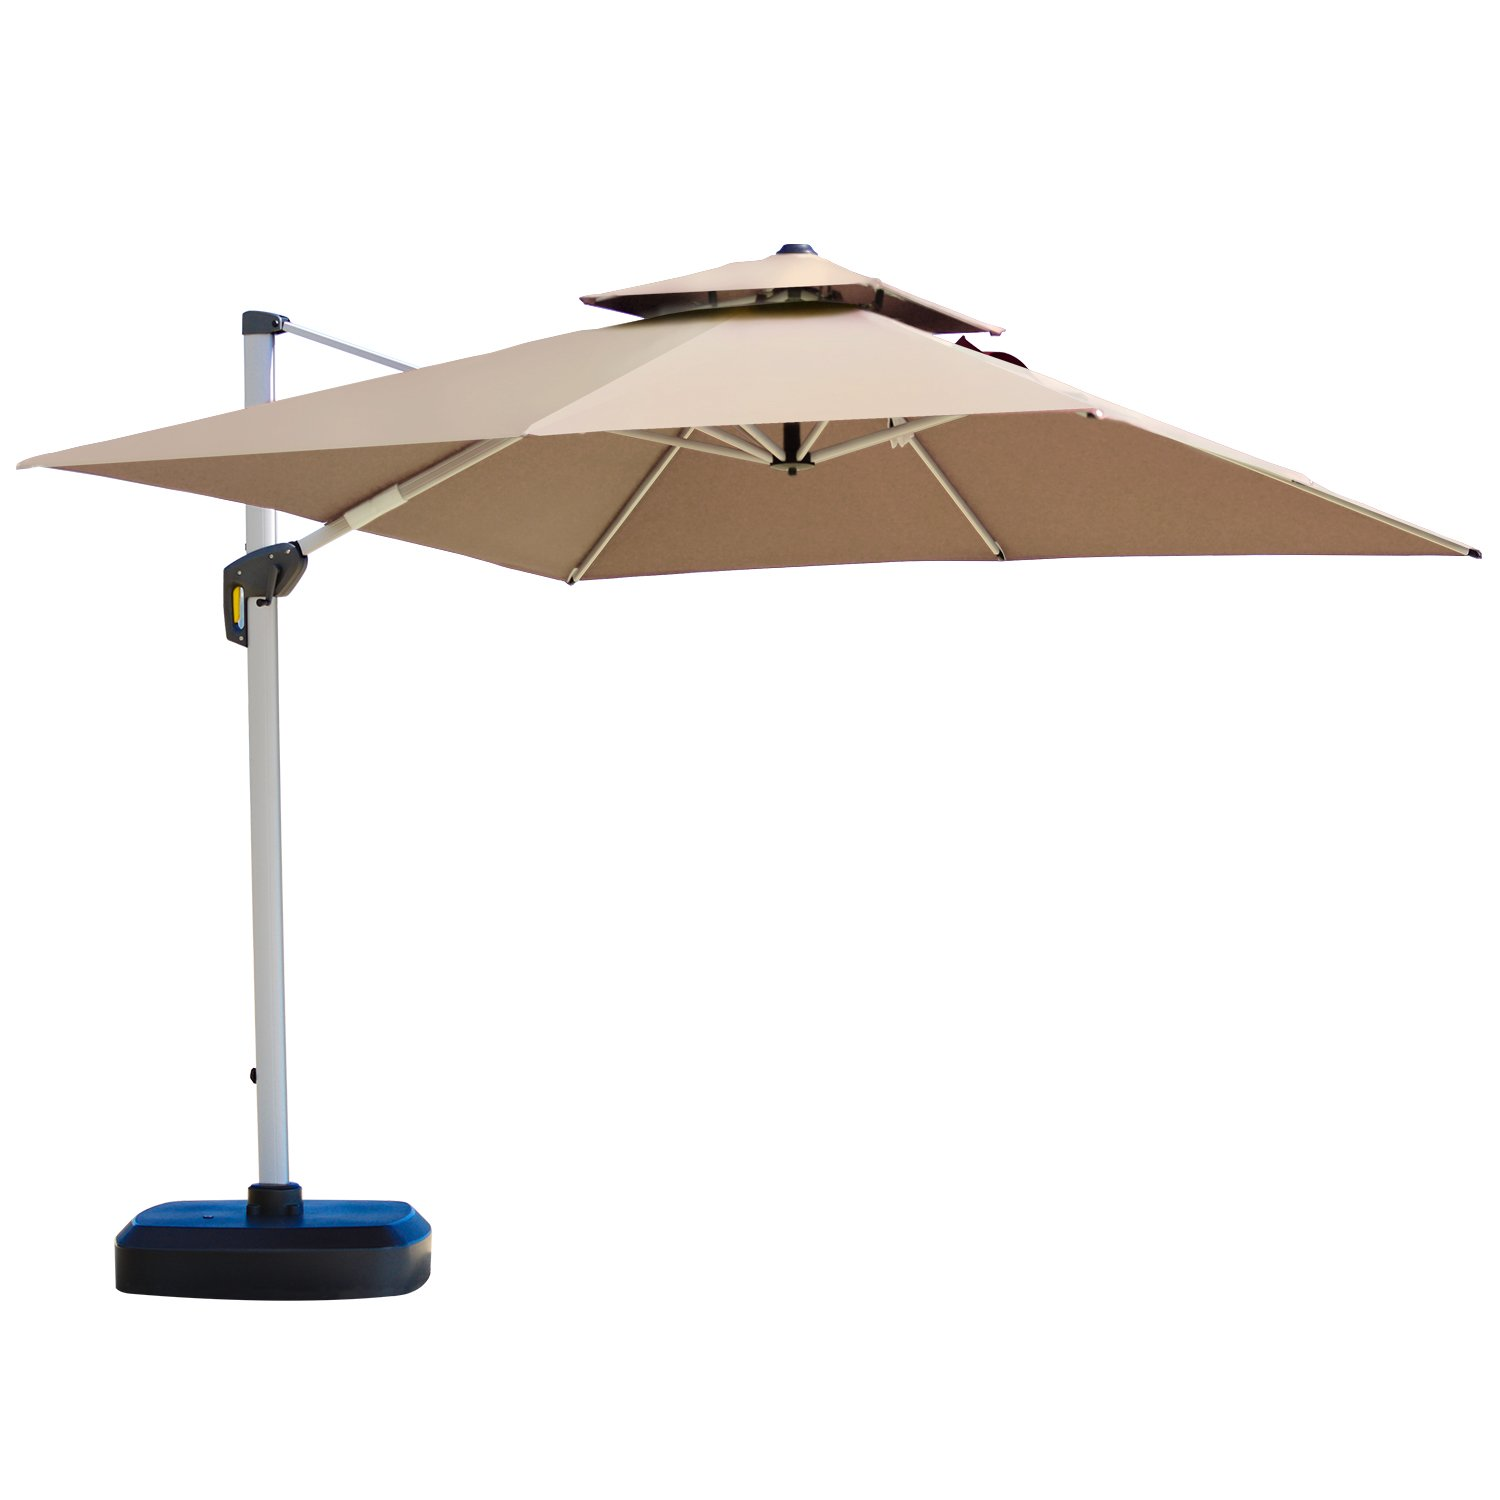 proddetail twin patio offset expand flex to asp click umbrella